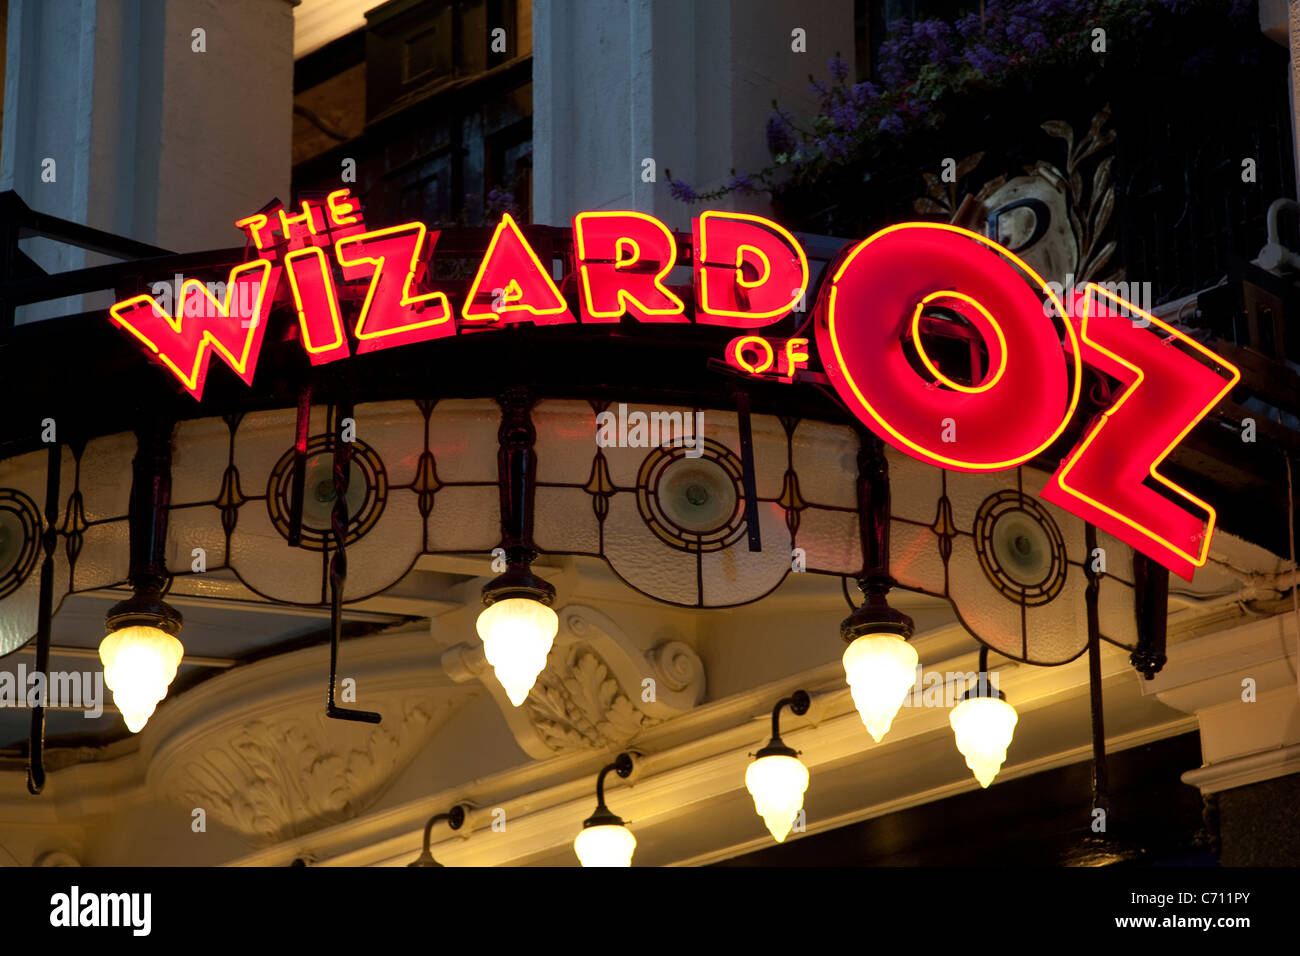 'Wizard of Oz at the Palladium Theater, West End, London - Stock Image